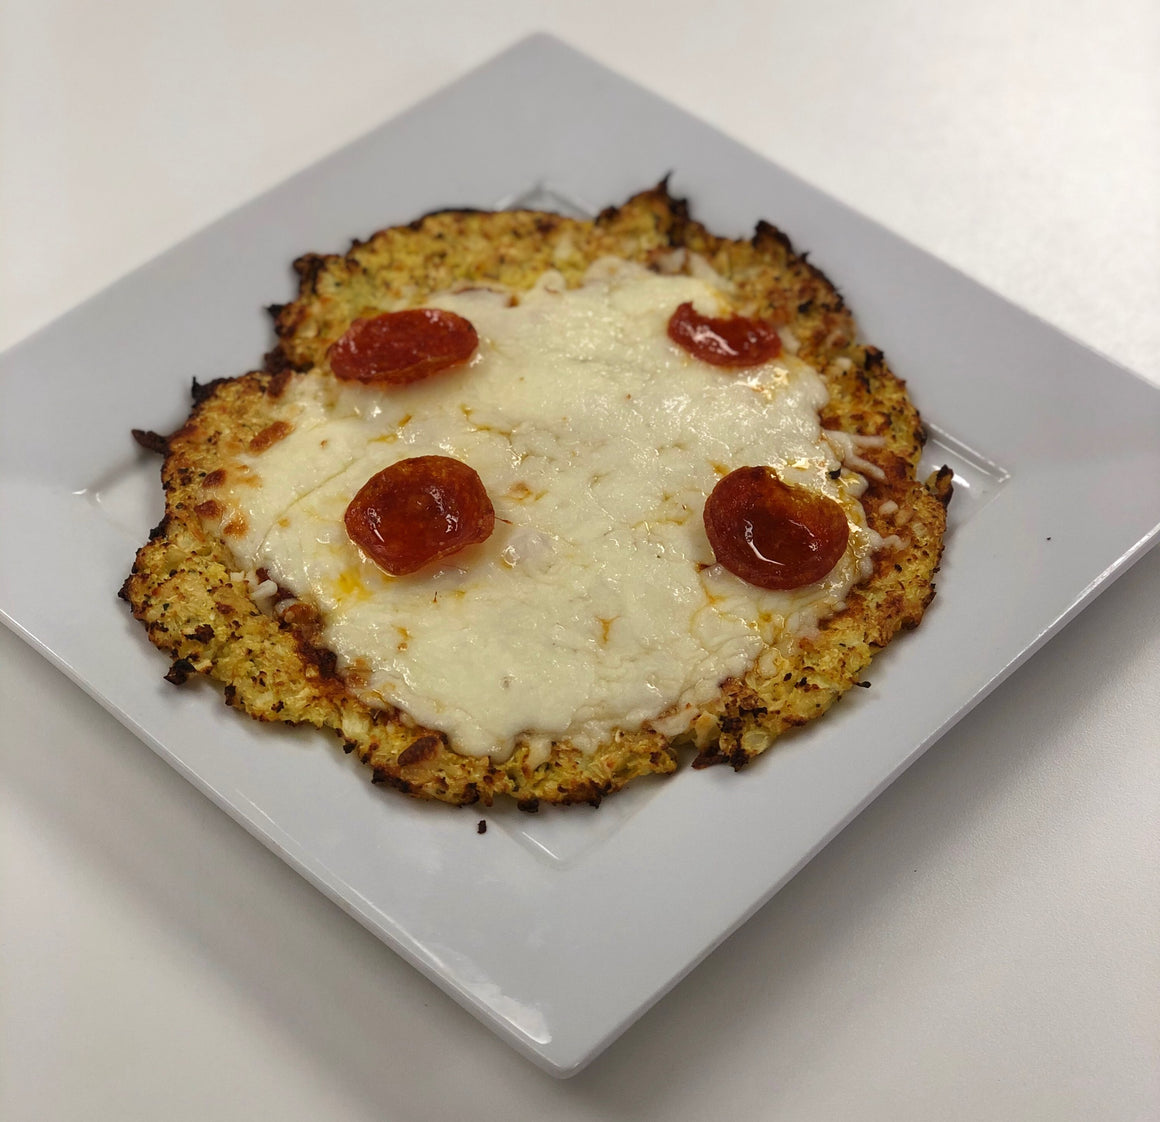 Keto Cauliflower Crust Pizza with Pepperoni - Hobby Hill Farm